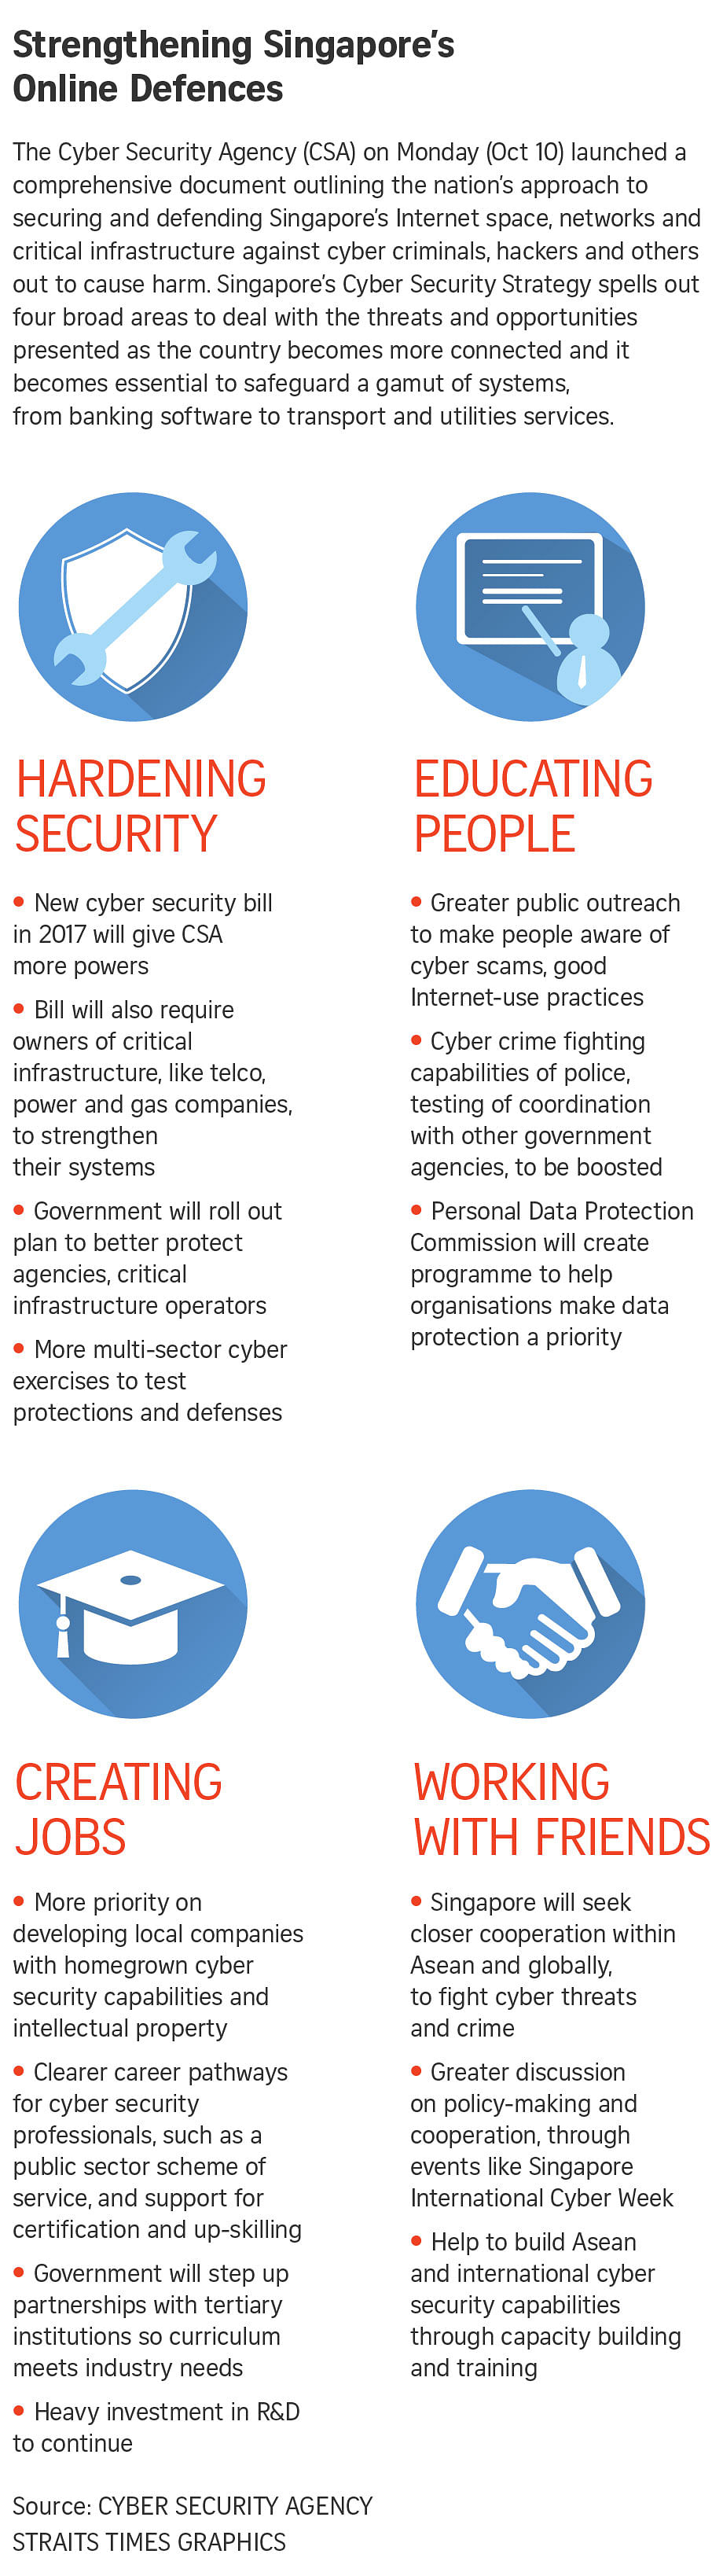 Singapore cyber security strategy launched, half of public